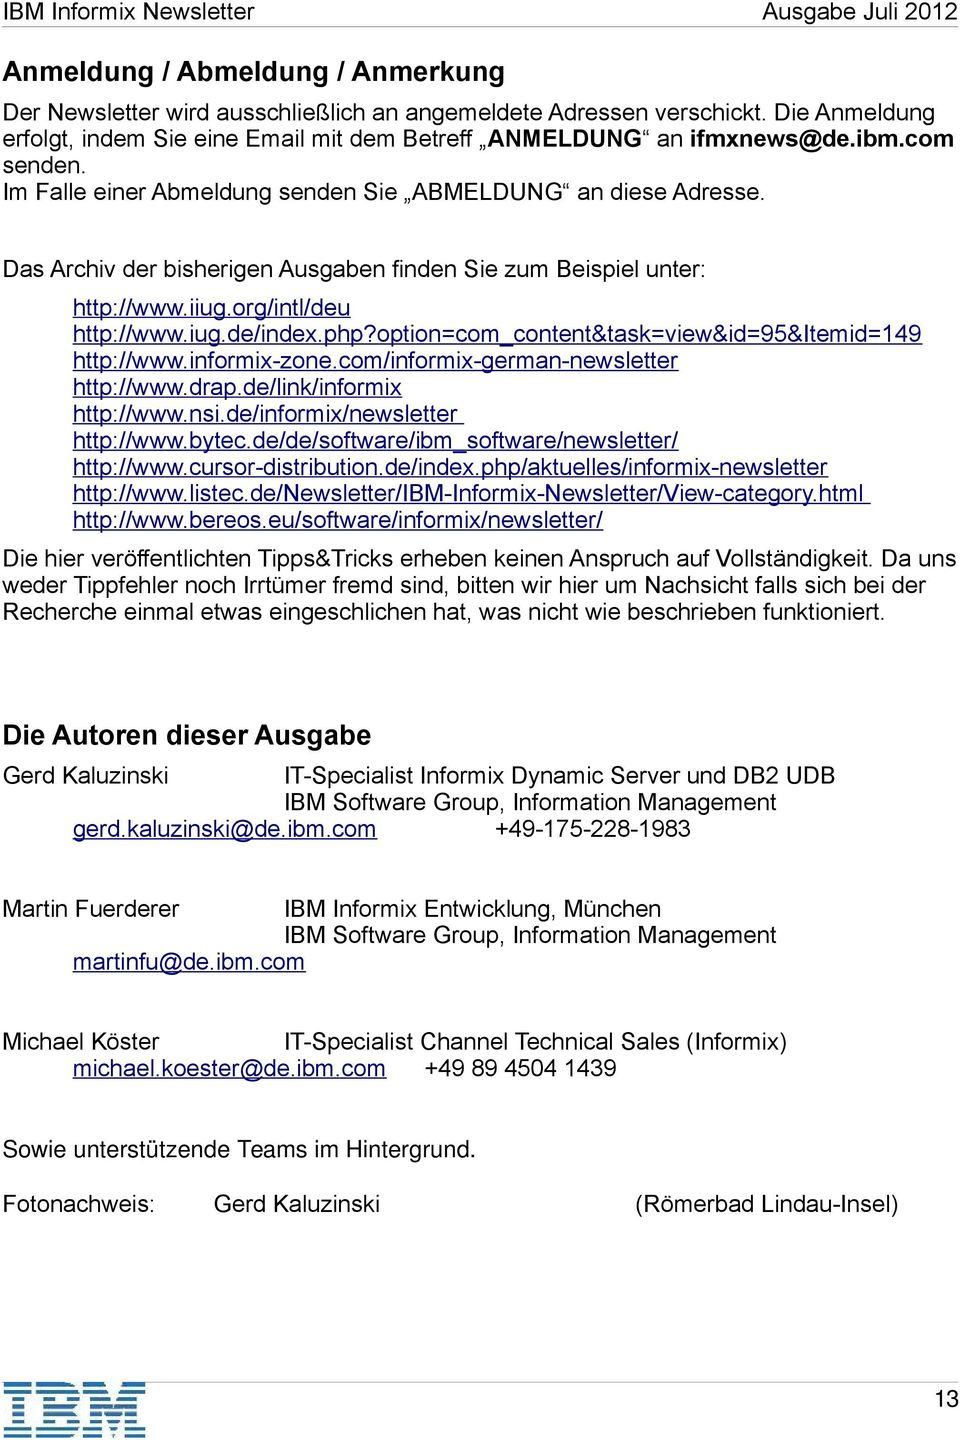 option=com_content&task=view&id=95&itemid=149 http://www.informix-zone.com/informix-german-newsletter http://www.drap.de/link/informix http://www.nsi.de/informix/newsletter http://www.bytec.